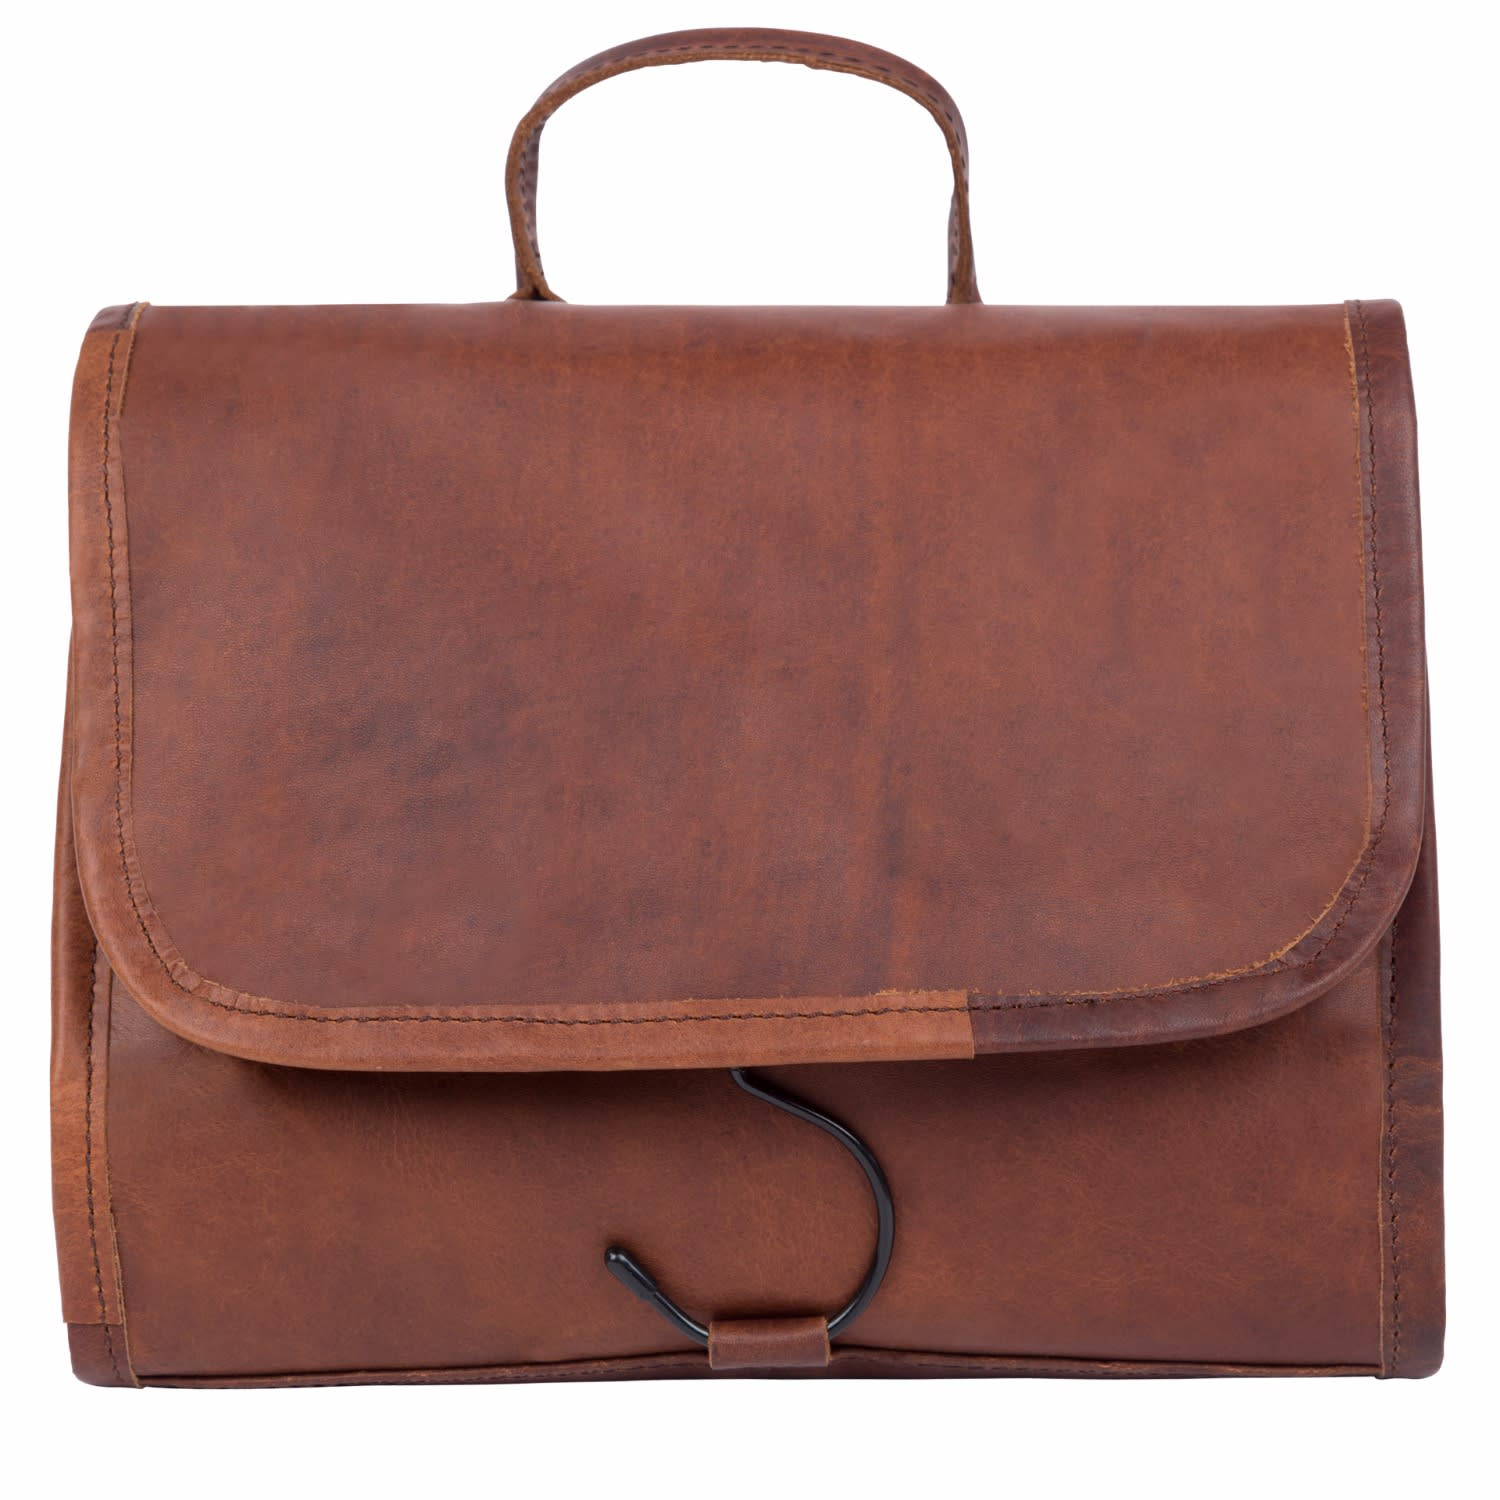 3f8db3870193 Top Leather Hanging Wash Toiletry Bag Dopp Kit in Vintage Brown with ZX93